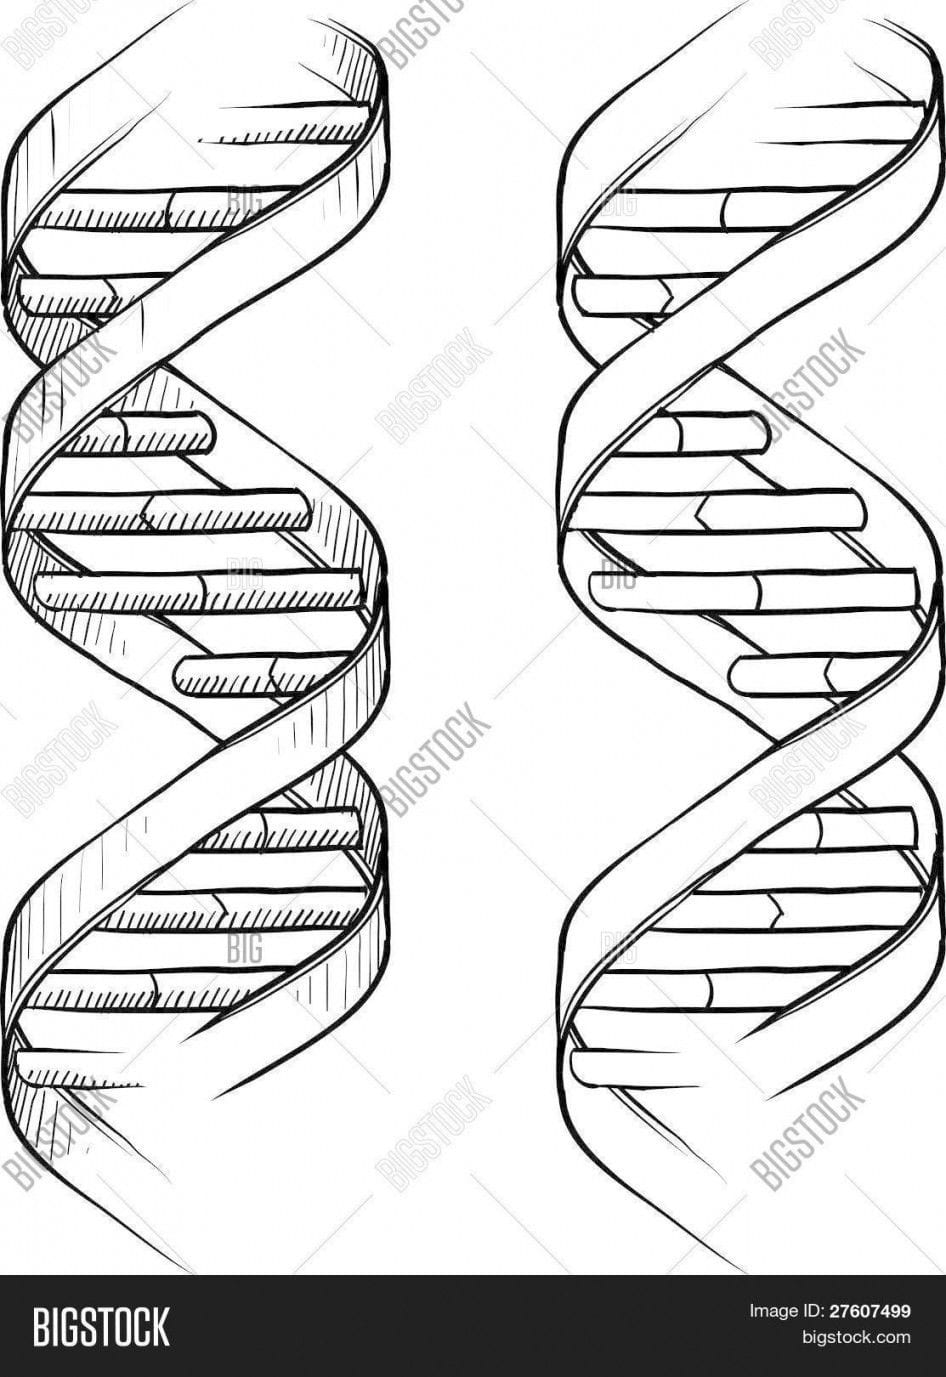 Dna The Double Helix Coloring Worksheet Answers — db-excel.com